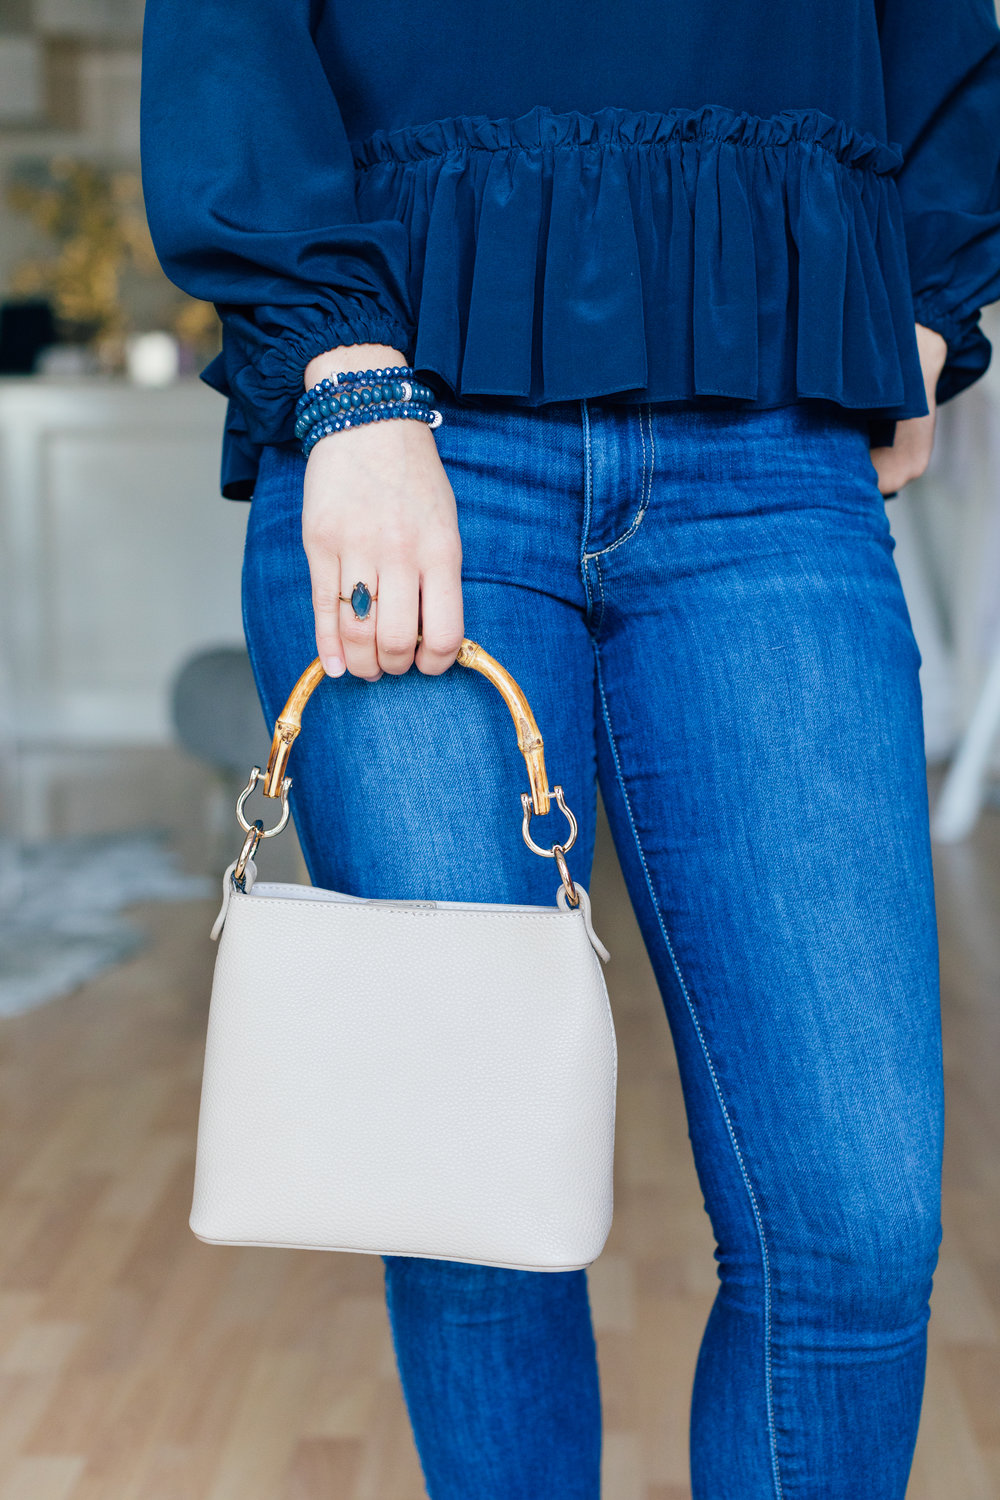 Our favorite new go-to: the Poppy Bag, Marquis Blue Quartz Ring by Andrea Del Bello Jewelry and Pebbles by LLF stackable bracelets!